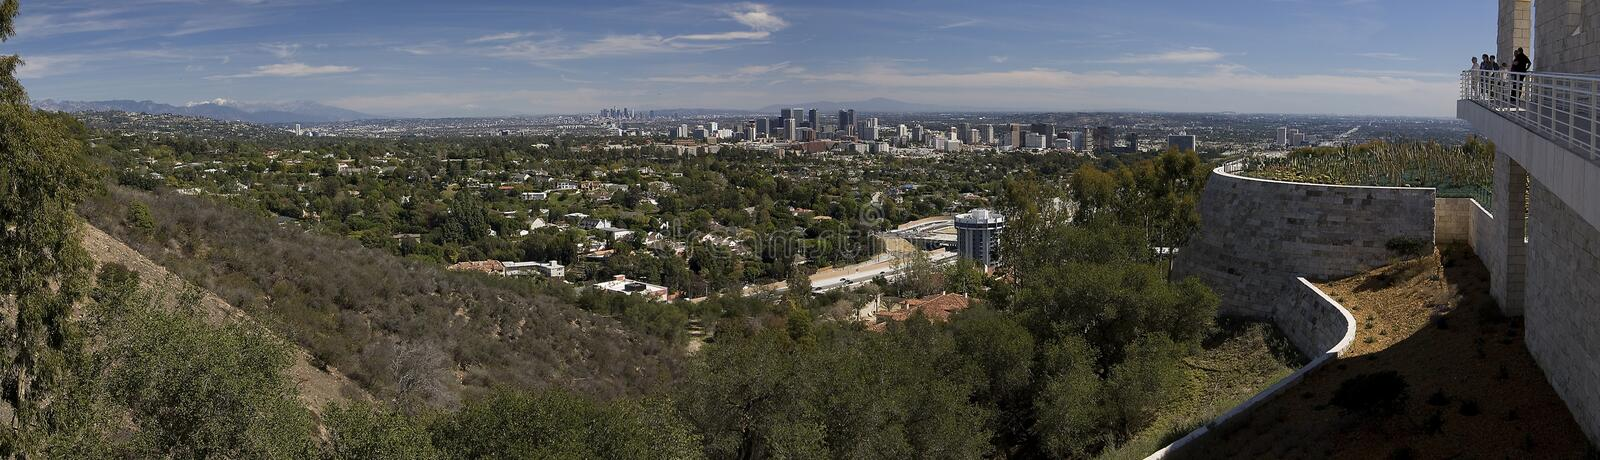 Los Angles Panorama. From the Getty Museum royalty free stock image